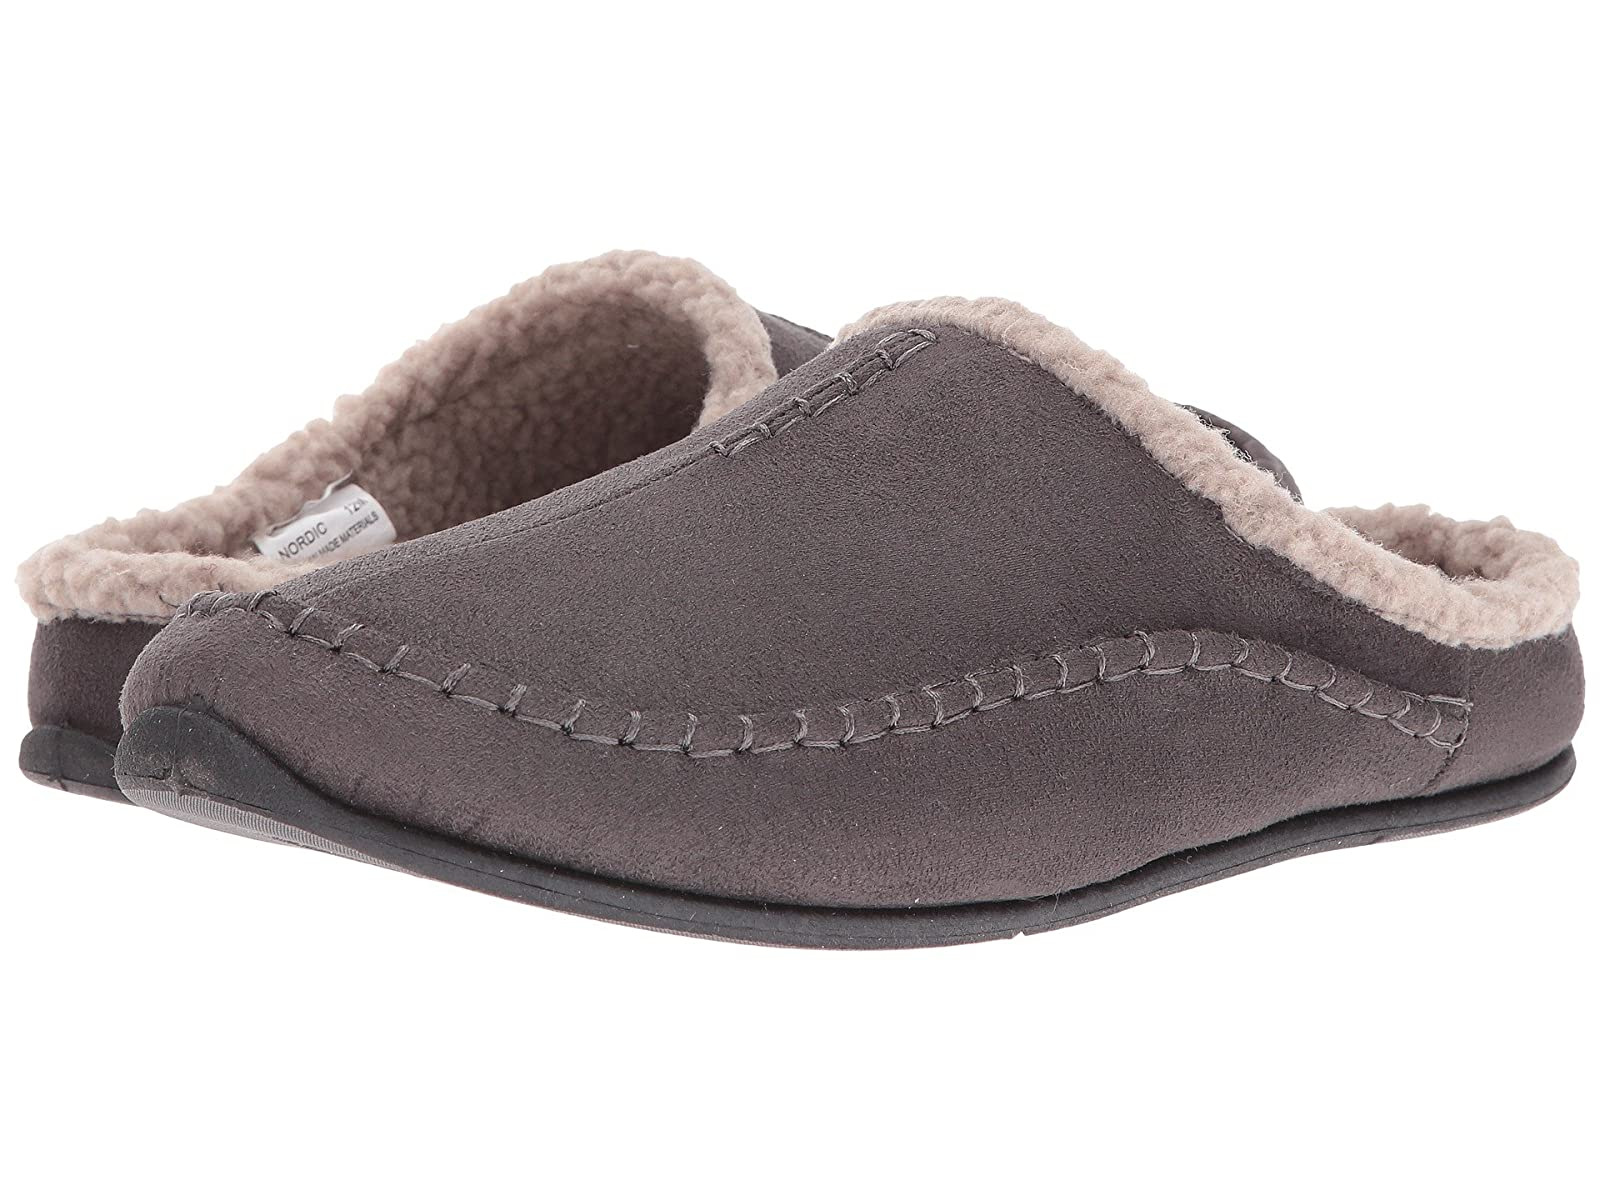 Deer Stags NordicAtmospheric grades have affordable shoes